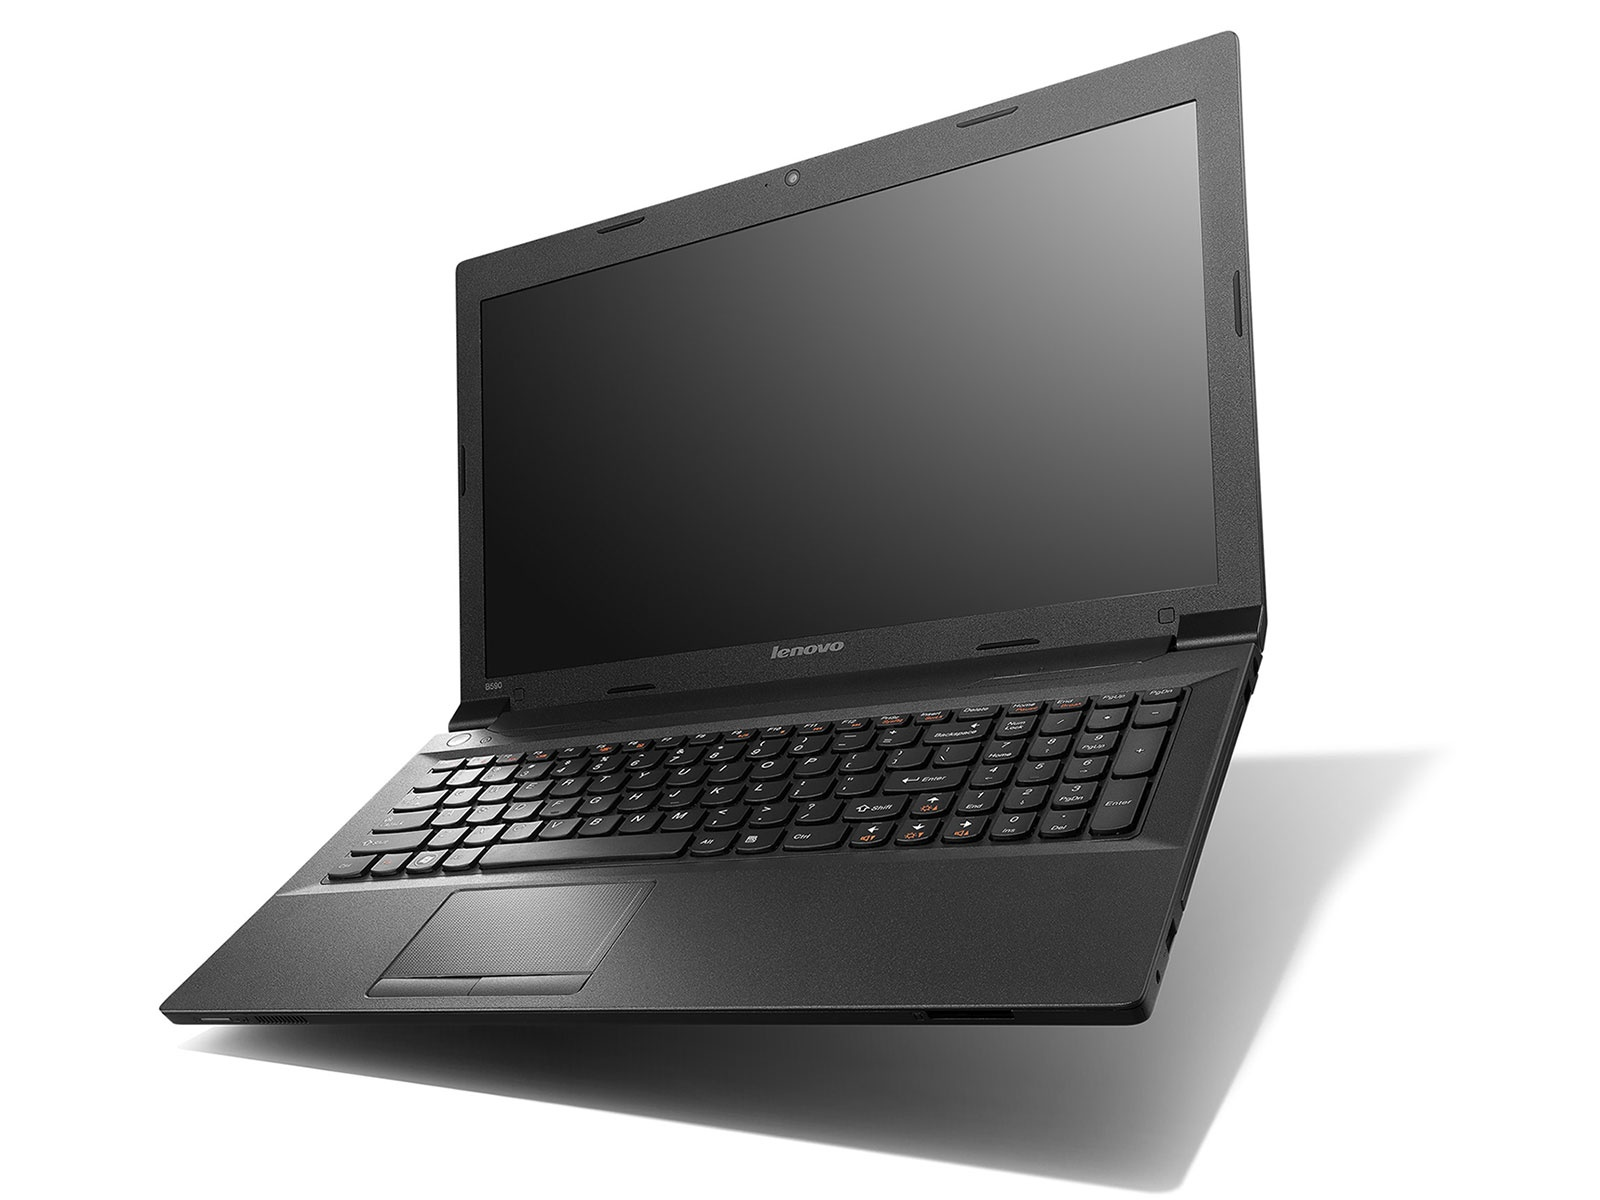 lenovo drivers for windows 7 64 bit g50